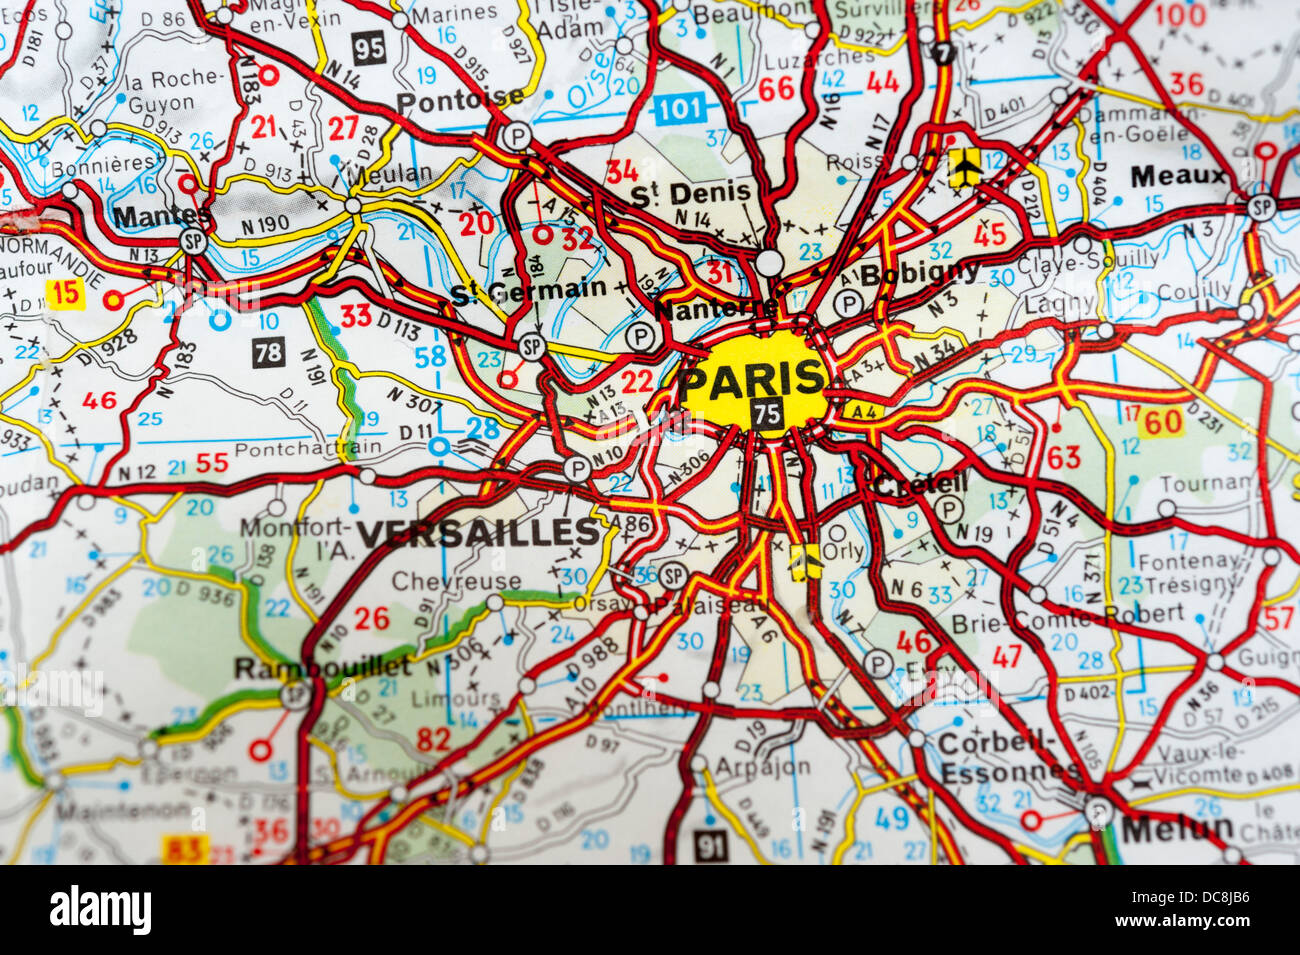 map of paris and surrounding areas close up stock image